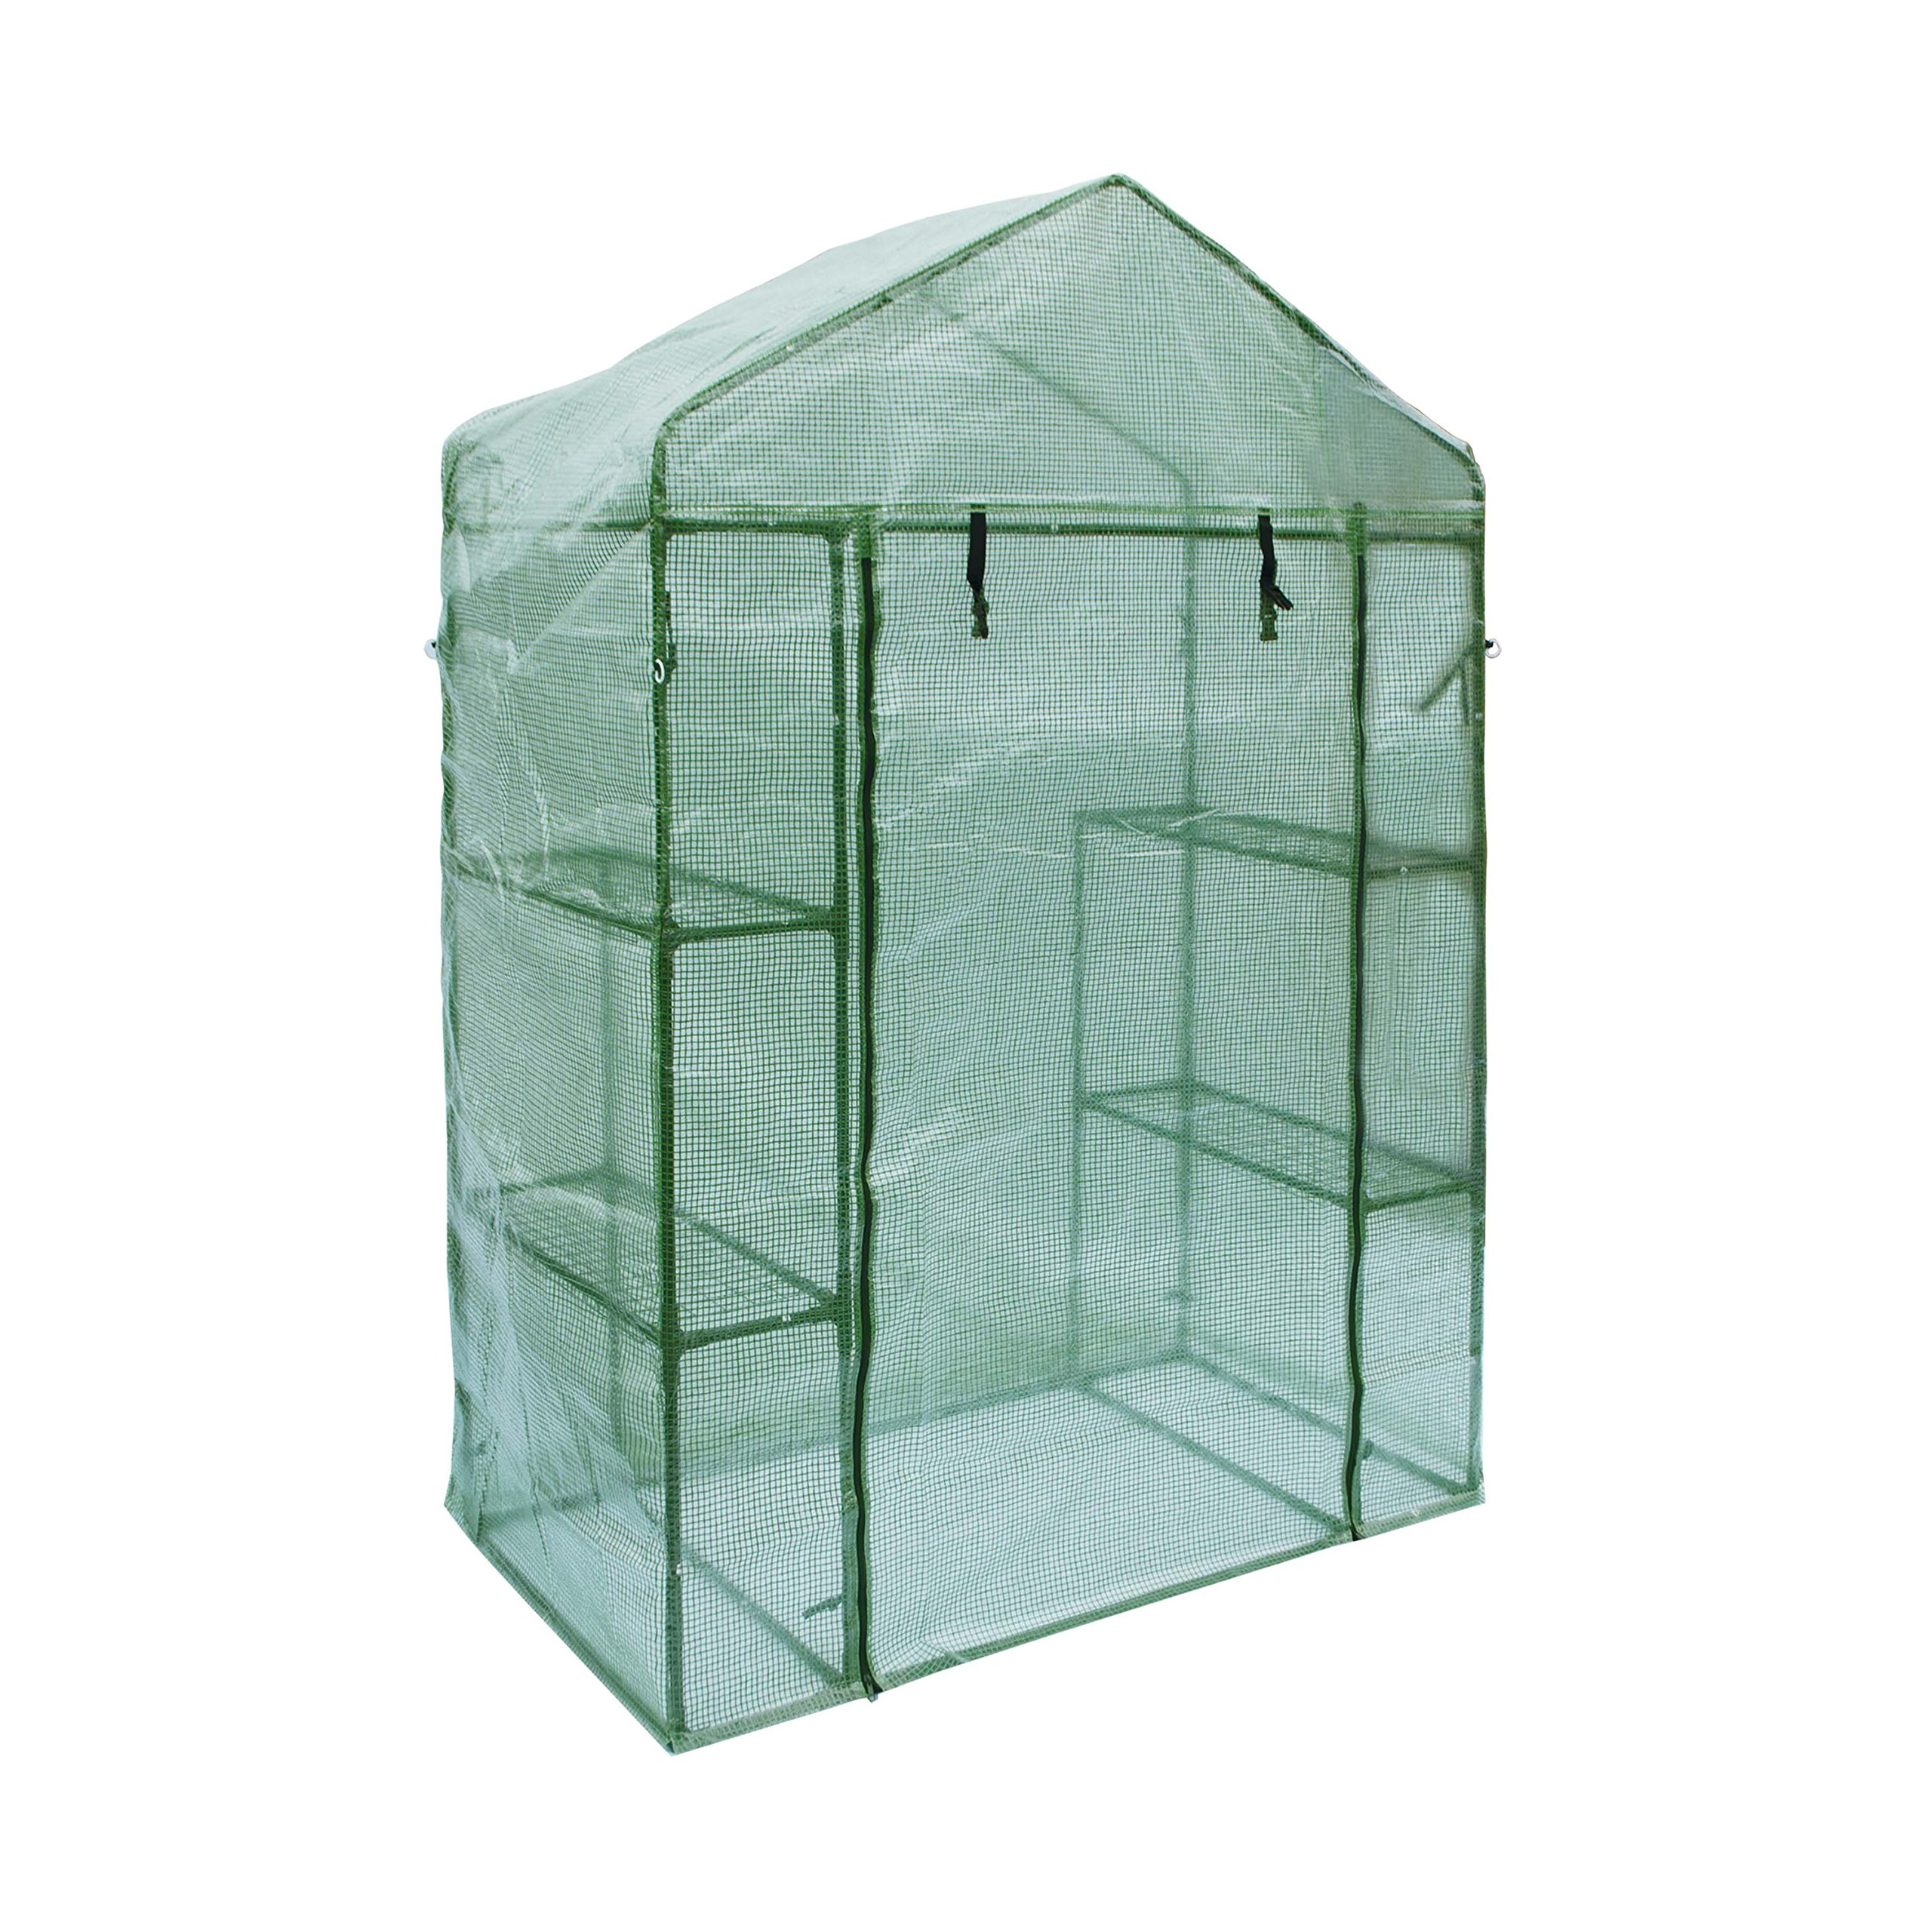 ALEKO GH56X29X77 Walk In Garden Plant Outdoor Greenhouse 4 Shelves Shed 56X29X77 Inches